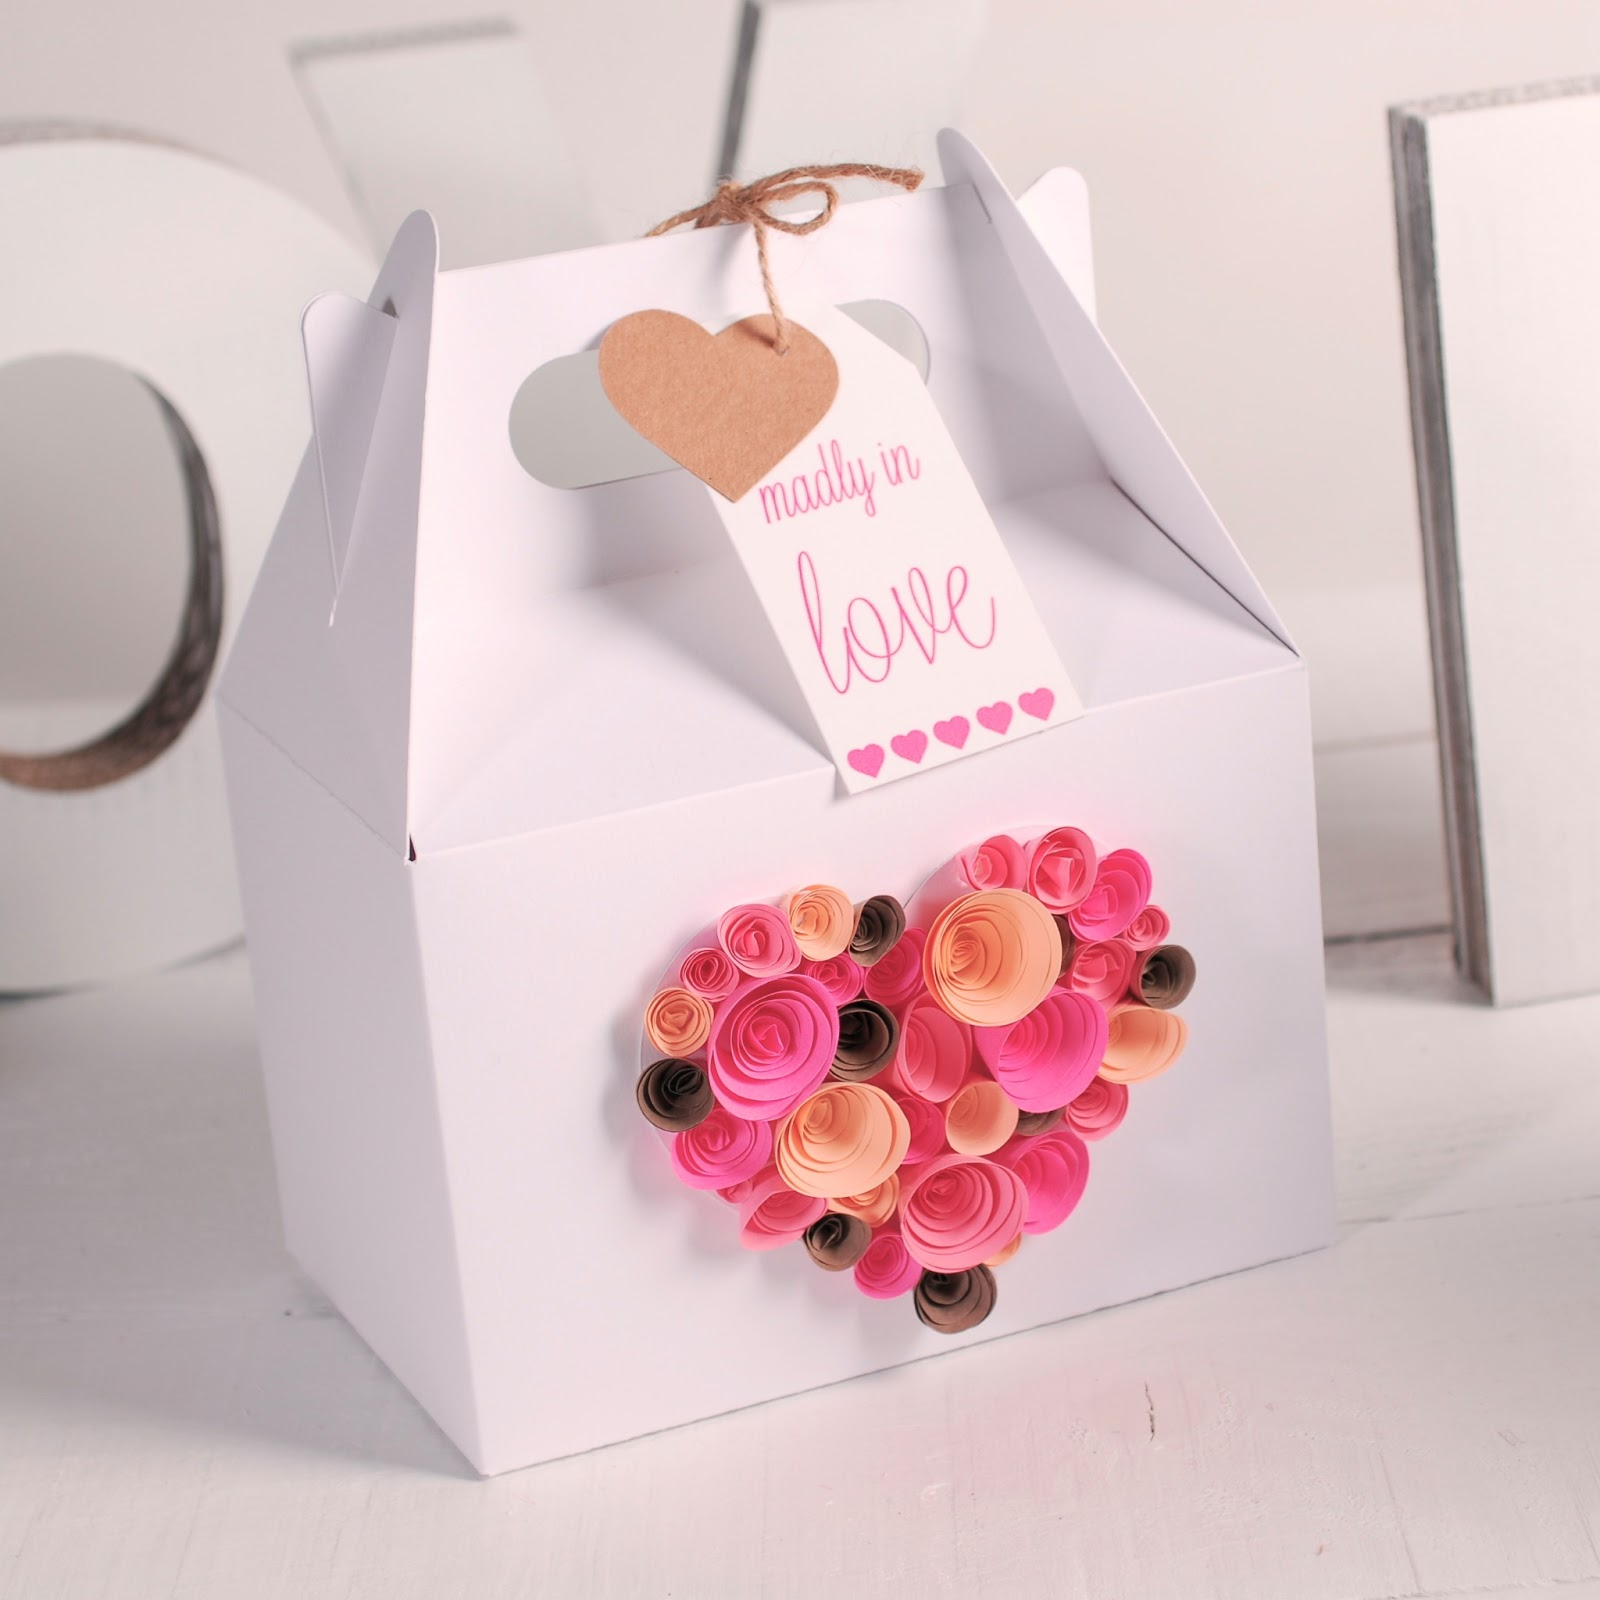 Ideas For Decorating Valentine Box: Gift Wrapping Ideas For Valentines Day